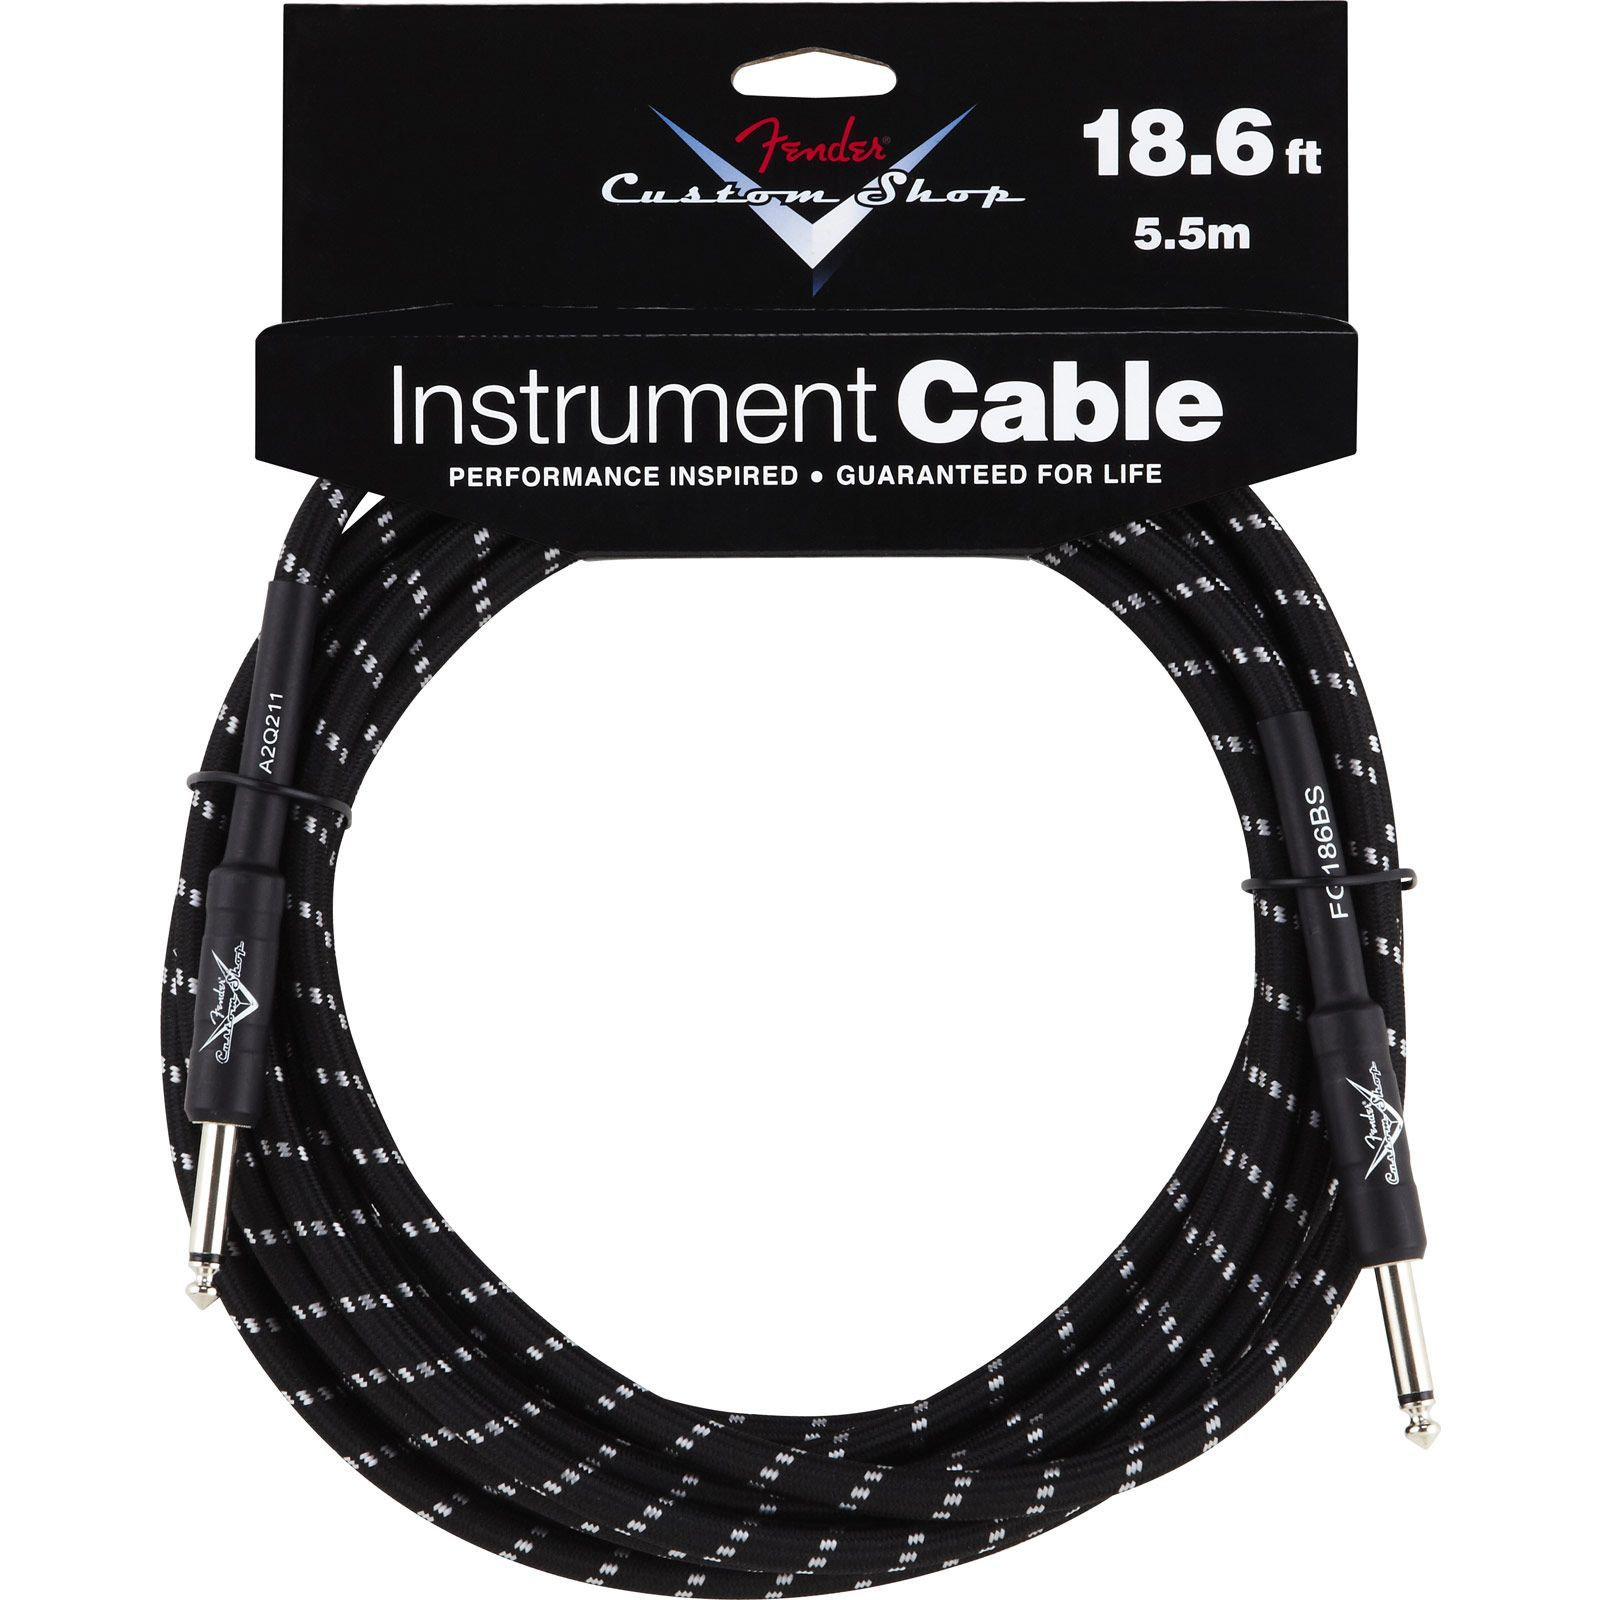 Fender Custom Shop Cable 5,5m BTW Black Tweed, Kli/Kli Produktbild